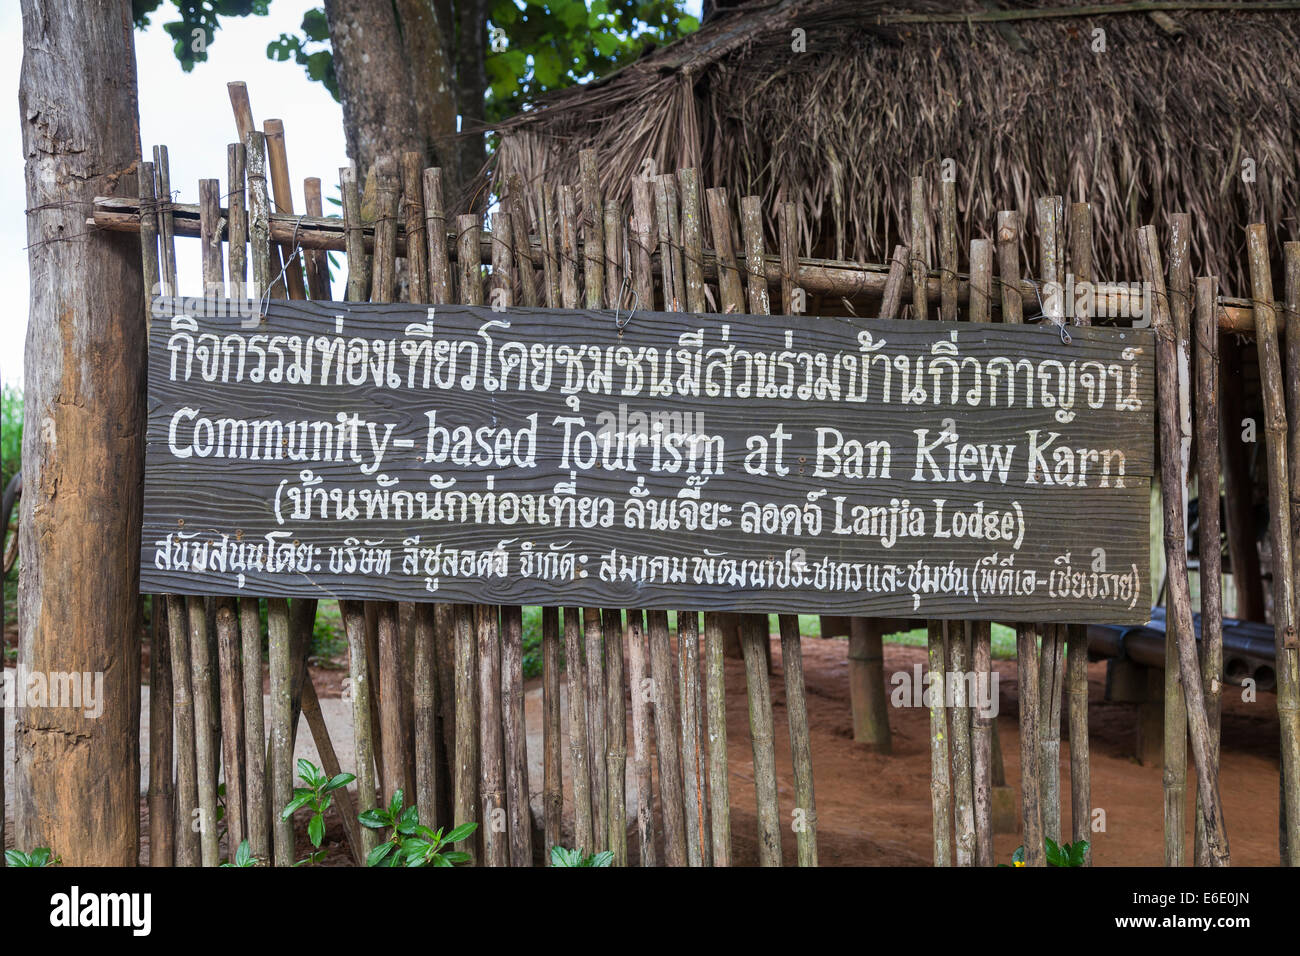 Sign promoting community based tourism at Ban Kiew Karn, Lanjia Lodge, Chiang Khong in Chiang Rai province, northern - Stock Image